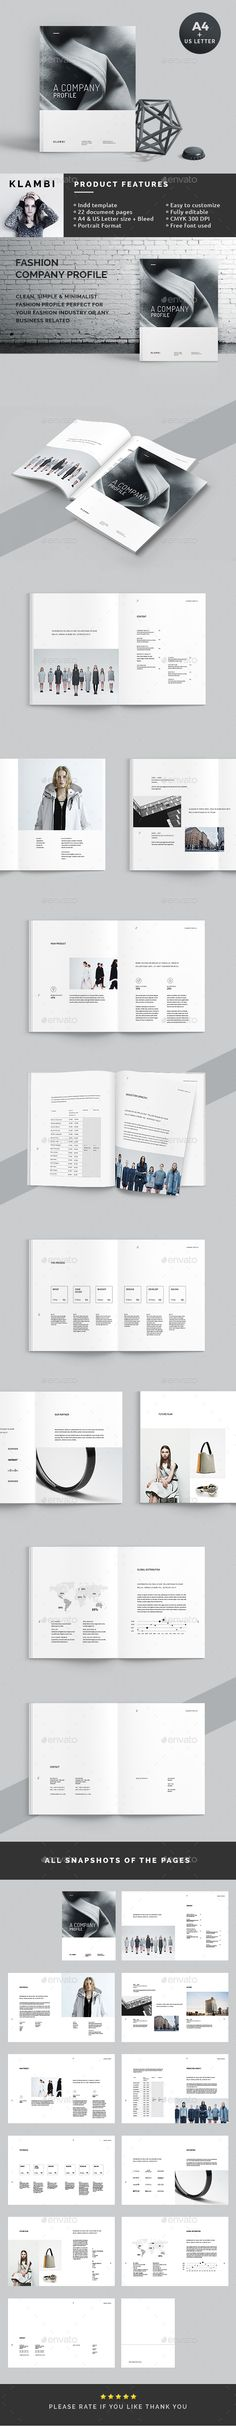 Profile - #Corporate #Brochures Download here: https://graphicriver.net/item/profile/19361453?ref=alena994